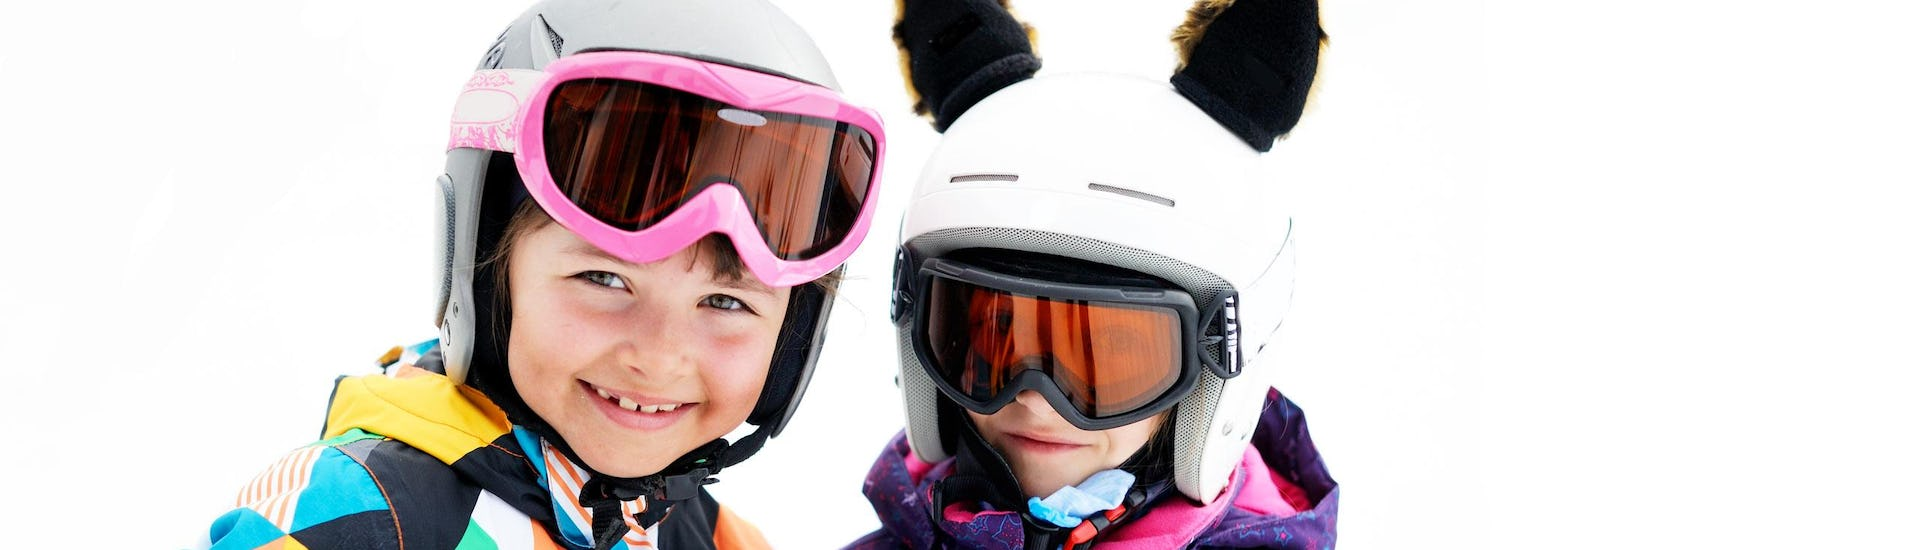 "Two young children smiling at the camera during one of the Ski Lessons ""RRS"" for Kids (8-14 years) - Advanced organised by skiCHECK Alpbach."